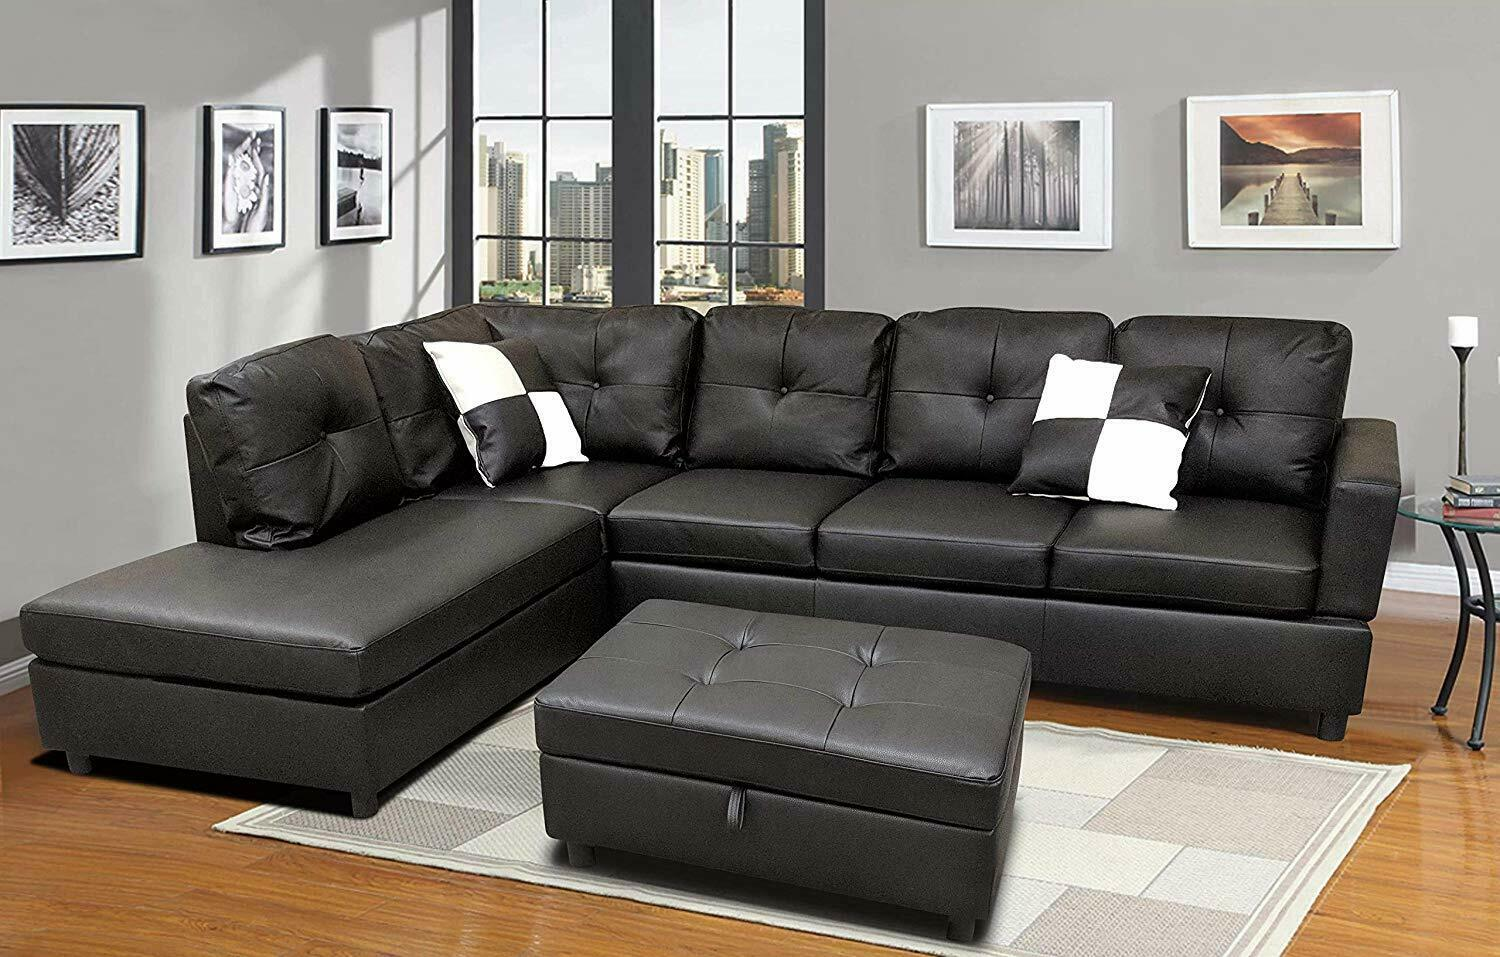 Modern Black Leather 3 Seater Sectional